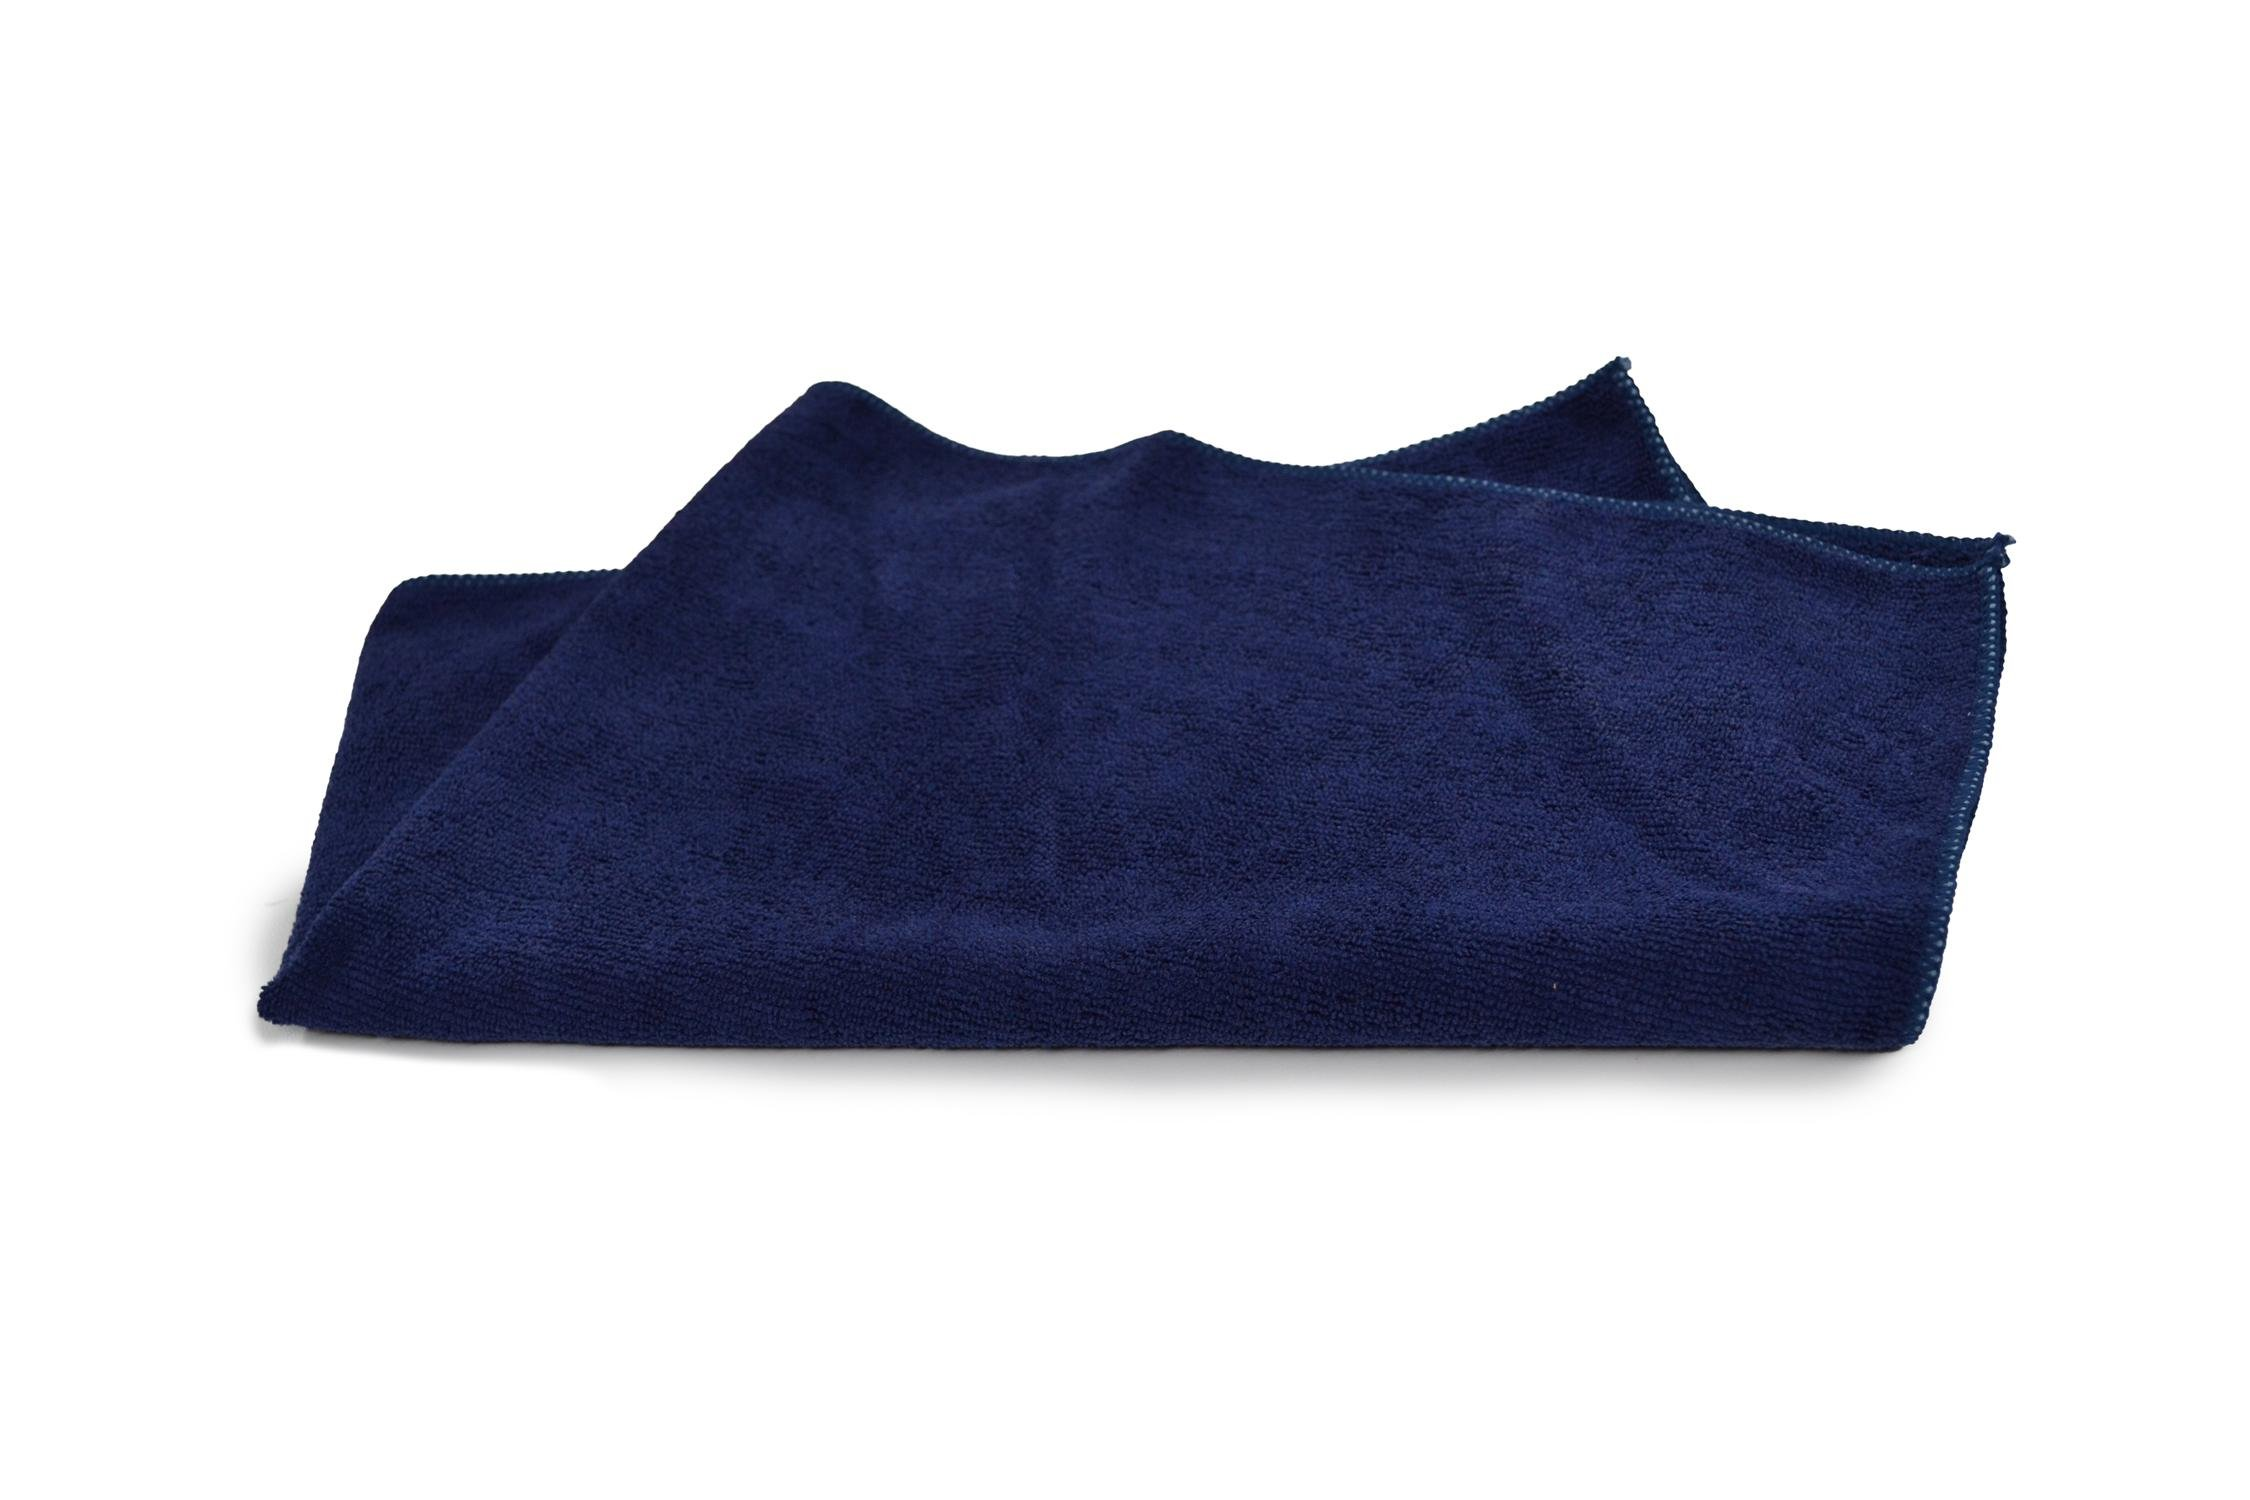 Pro-Clean Basics A73119 Microfiber Car Wash or Hand Towels Pallet, 16'' x 27'', Navy by Pro-Clean Basics